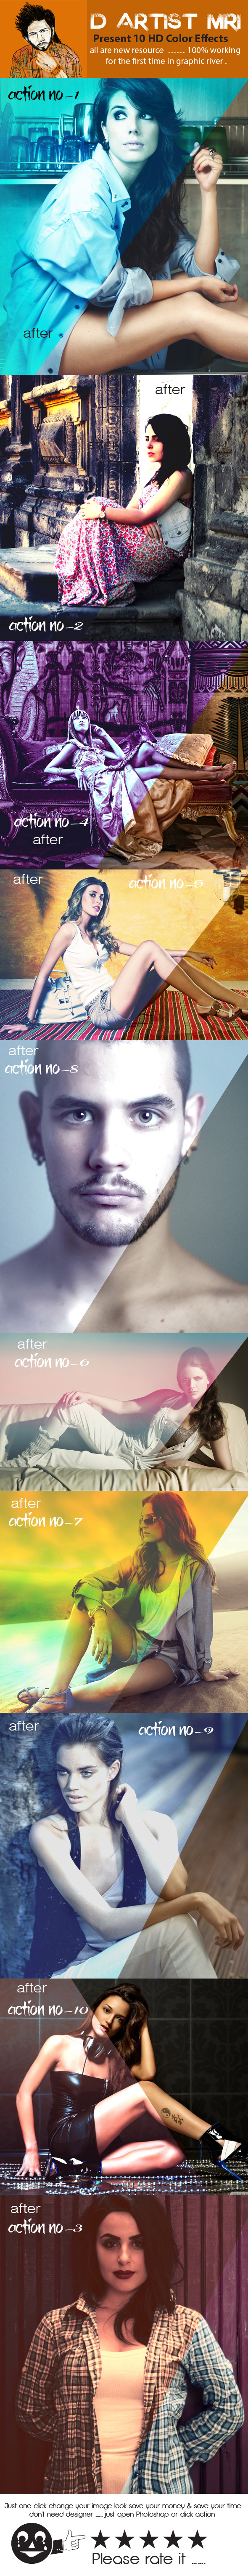 HD Color Effects - Actions Photoshop